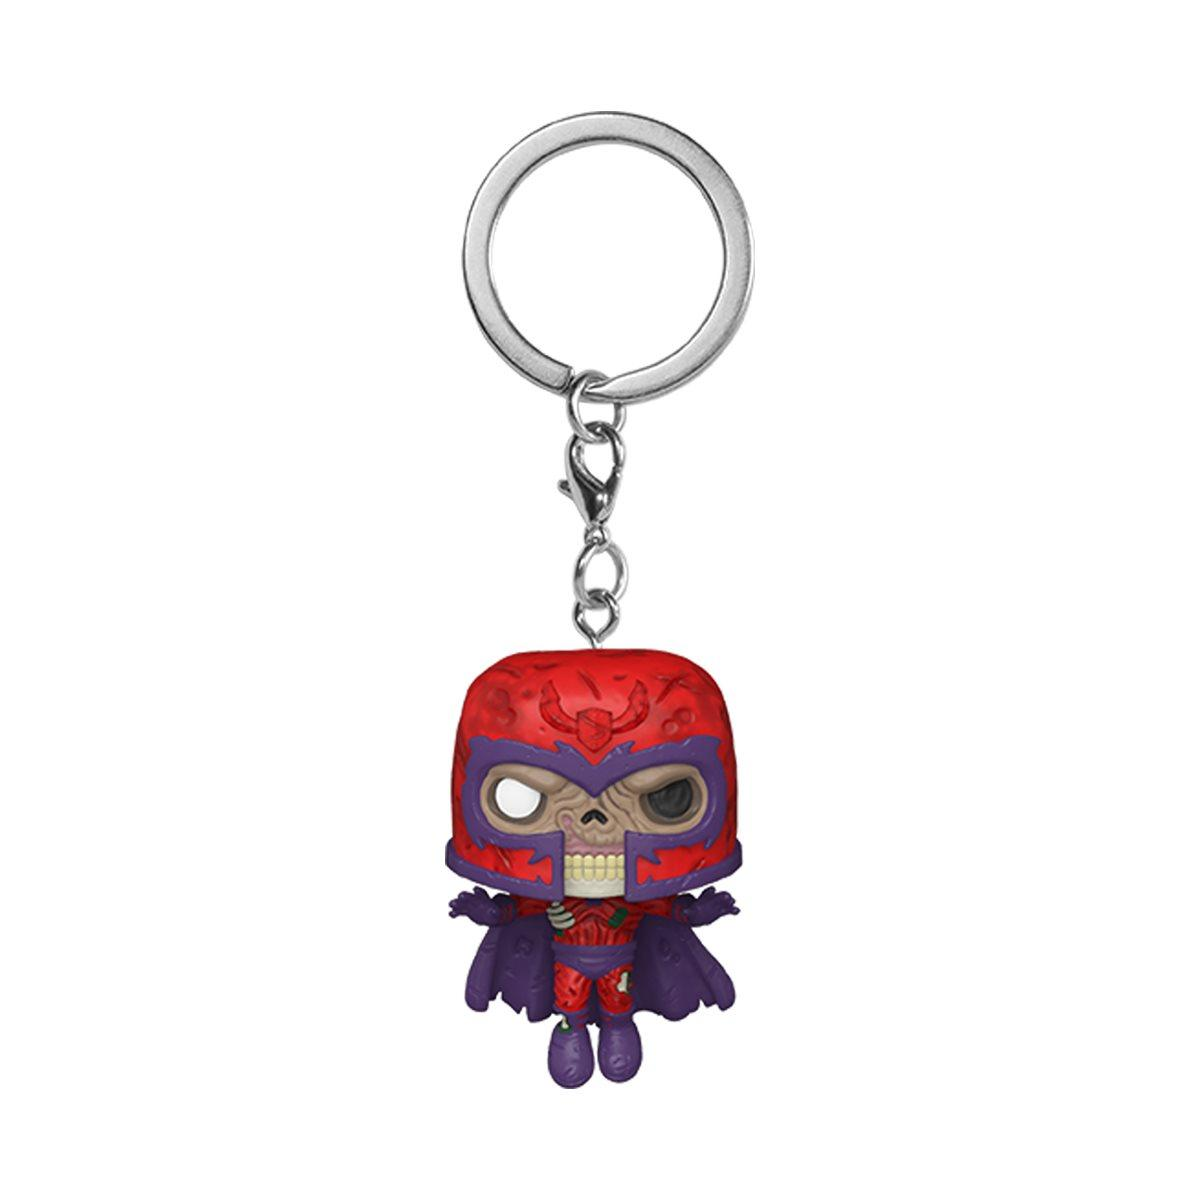 Funko Pocket Pop! Keychain: X-Men - Zombie Magneto